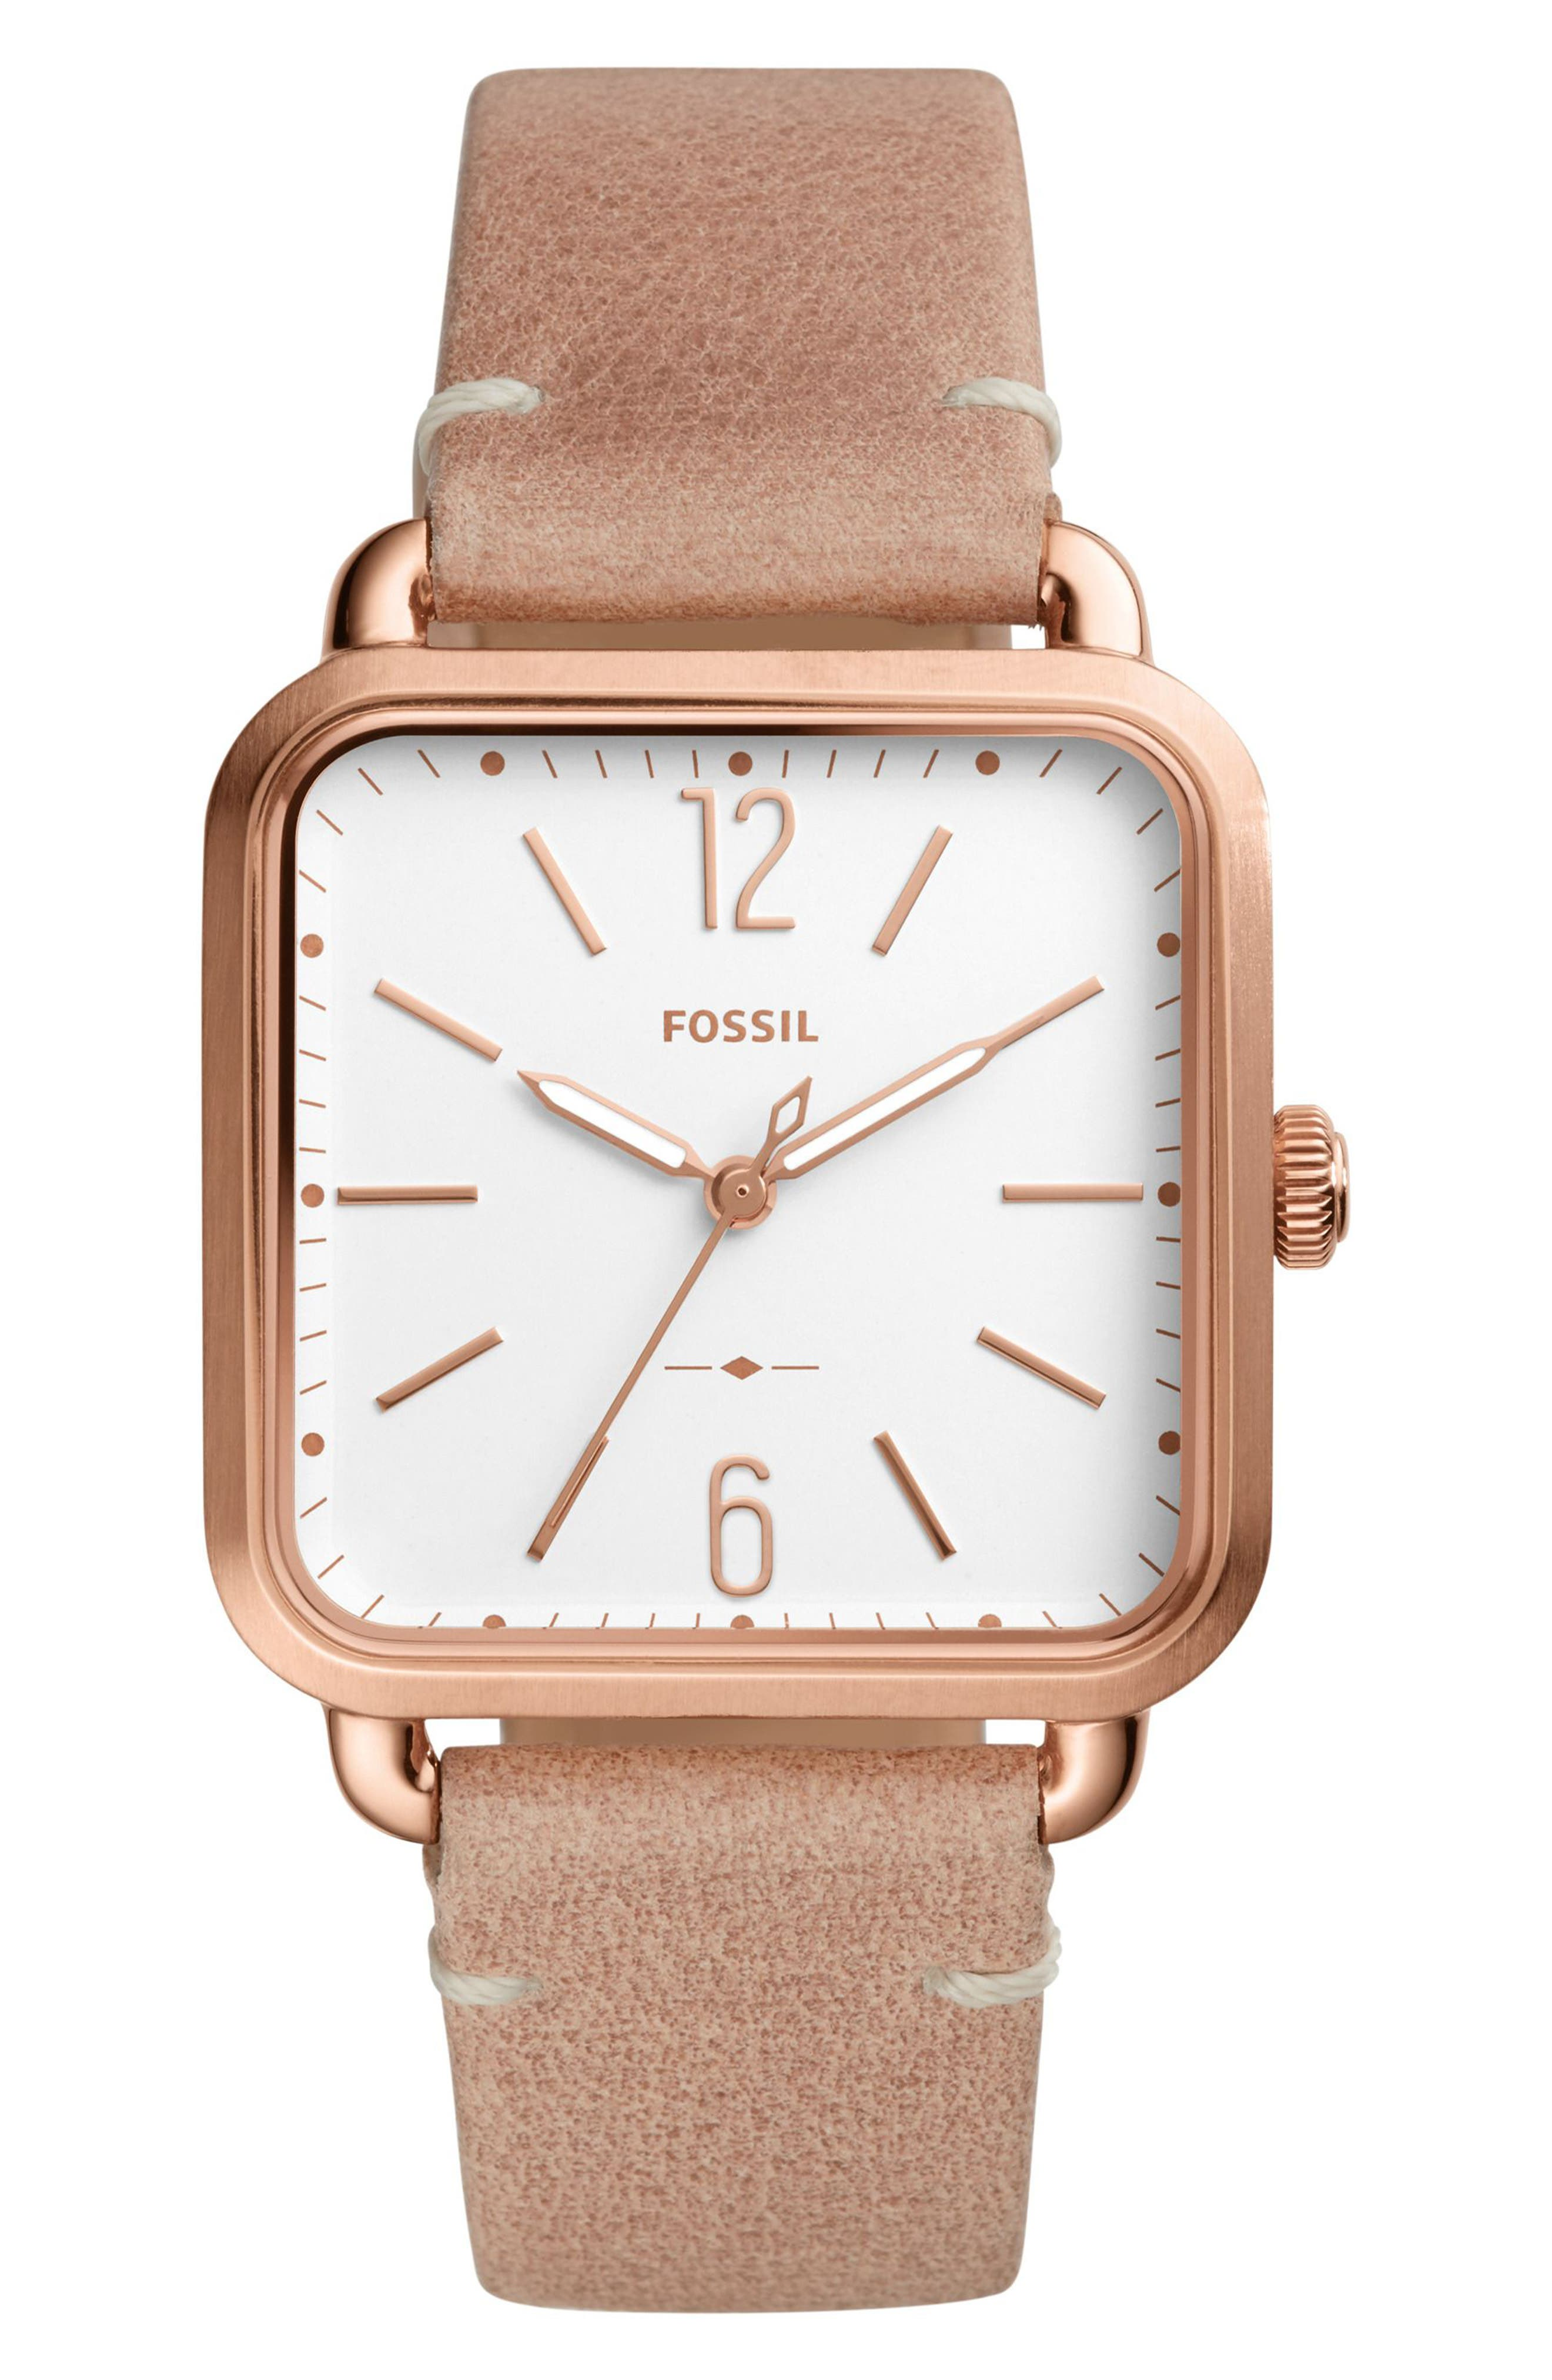 Fossil Micah Leather Strap Watch, 32mm x 32mm